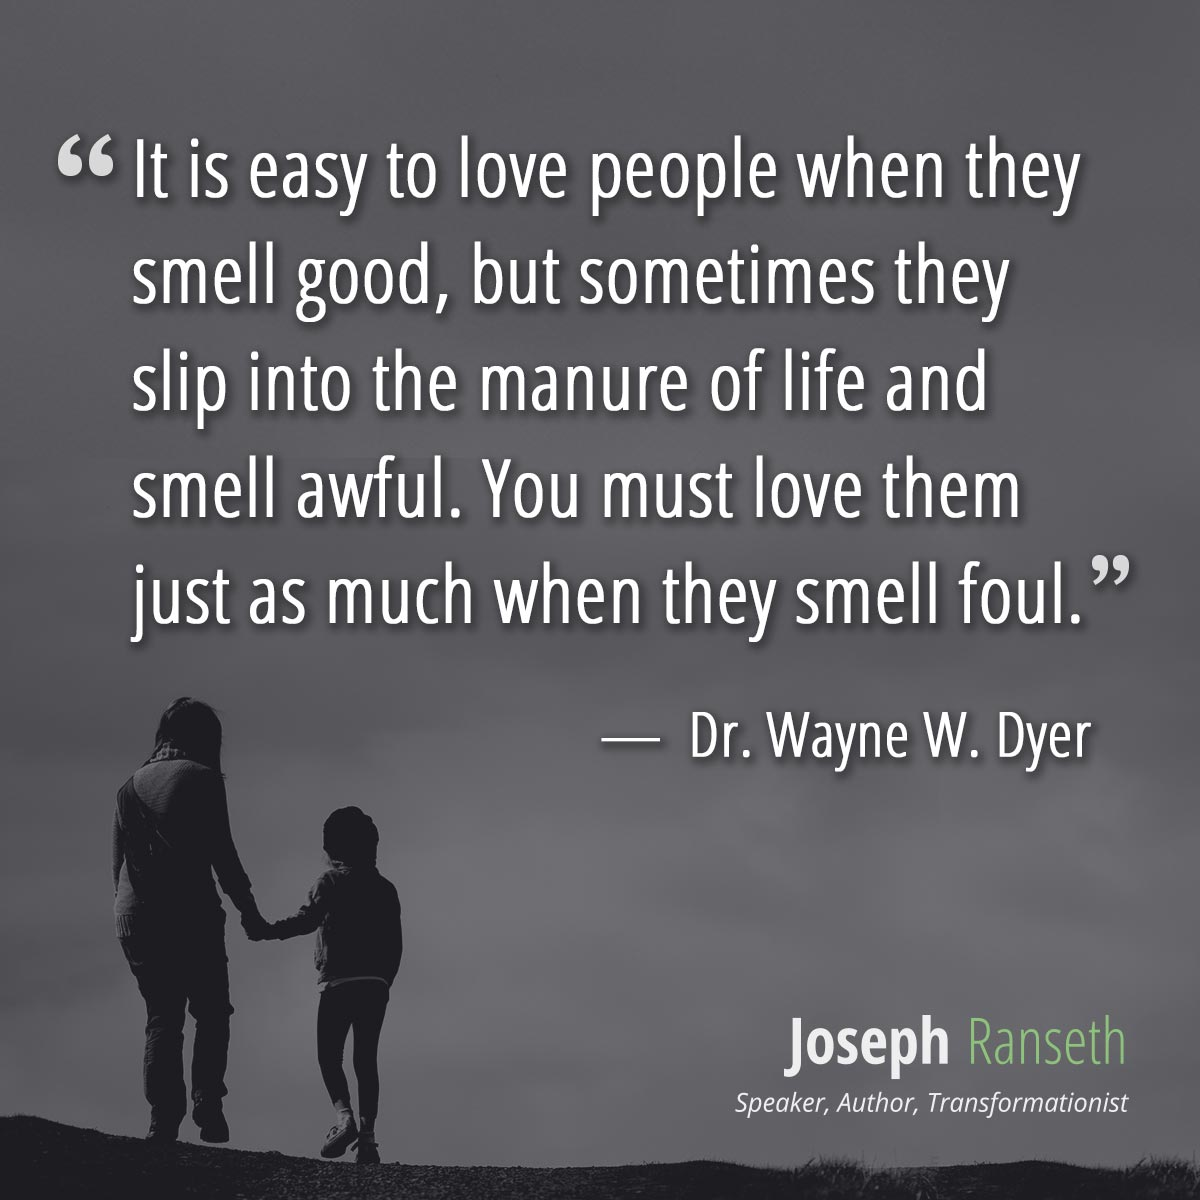 It is easy to love people when they smell good, but sometimes they slip into the manure of life and smell awful. You must love them just as much when they smell foul